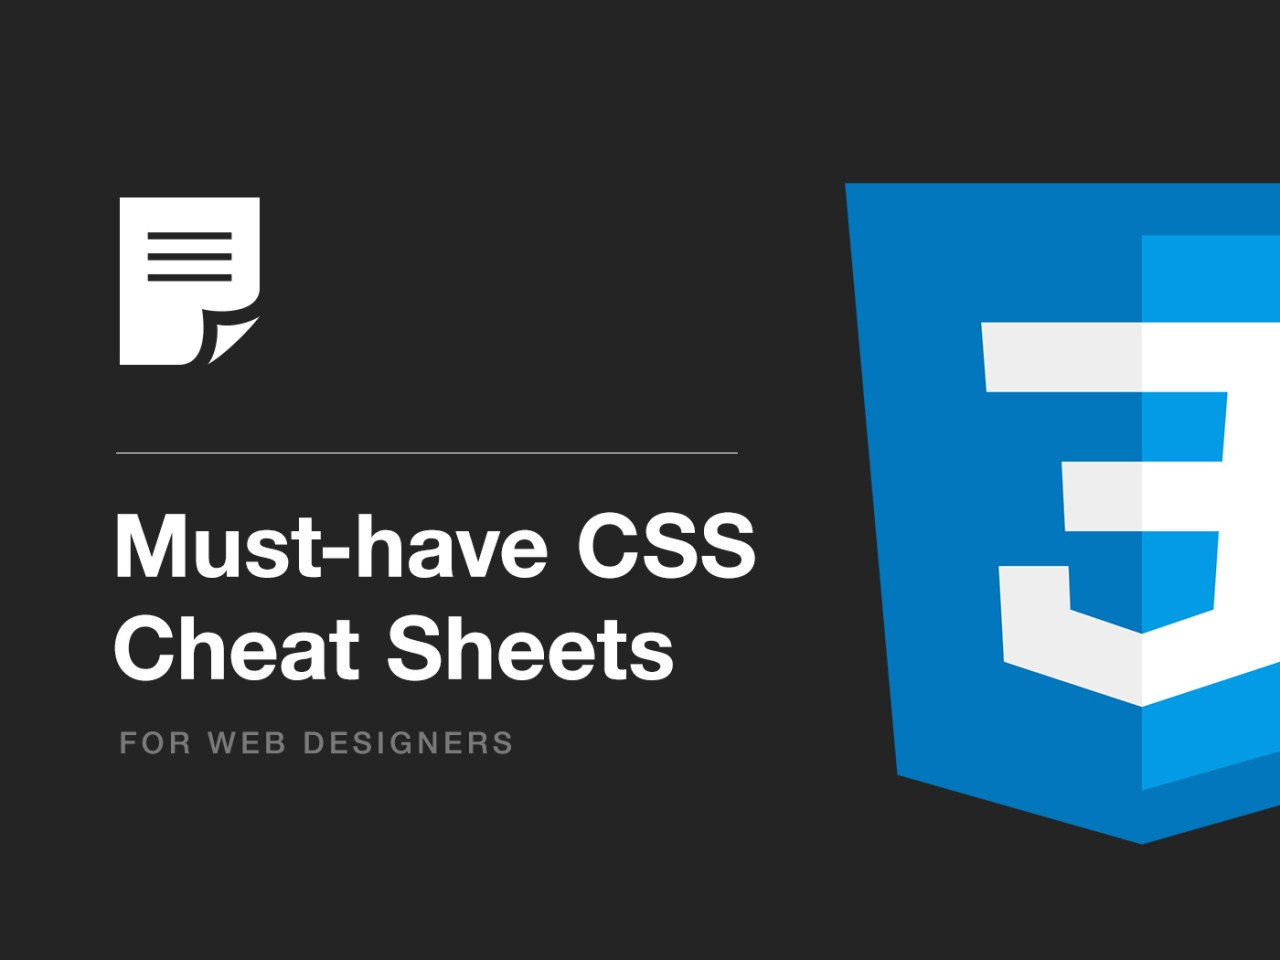 Must-have CSS Cheat Sheets for Web Designers